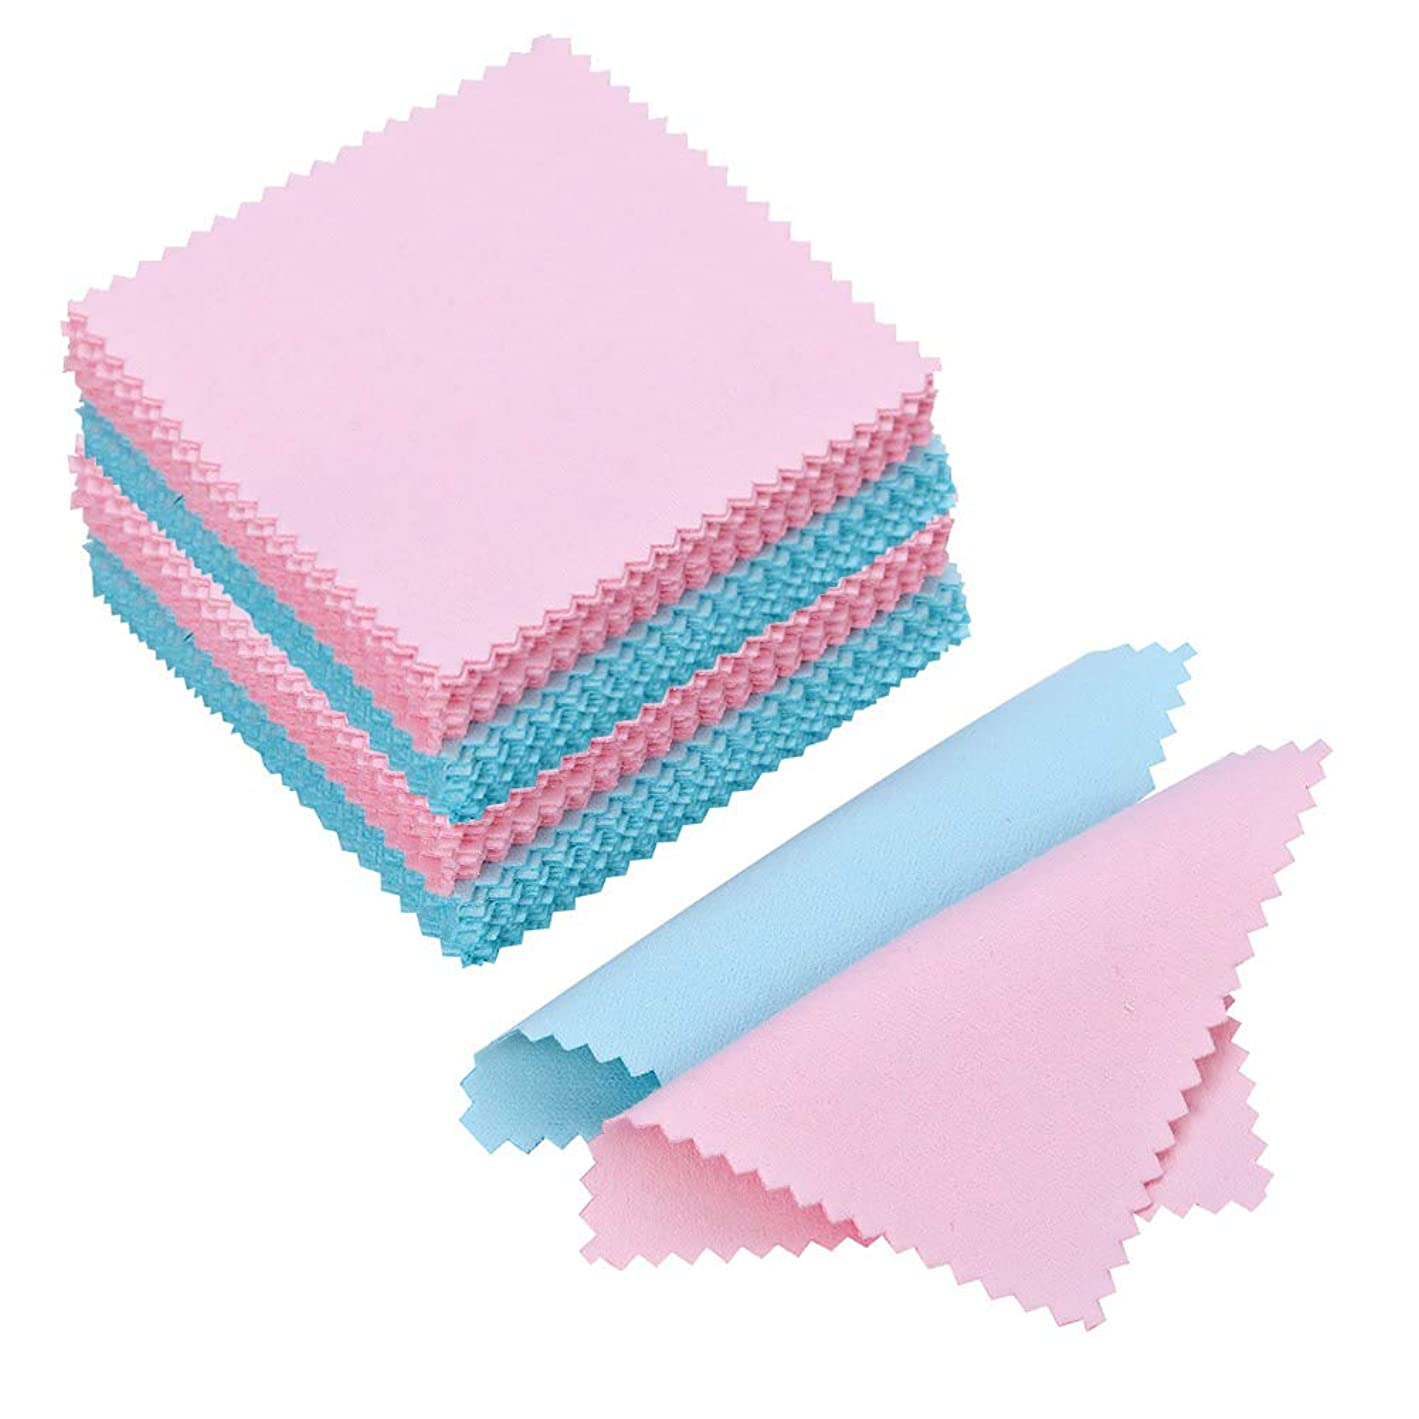 PORTOWN 100 Pack Jewelry Cleaning Cloth Polishing Cloth for Sterling Silver Gold Platinum (Pink and Blue) m92444603105033